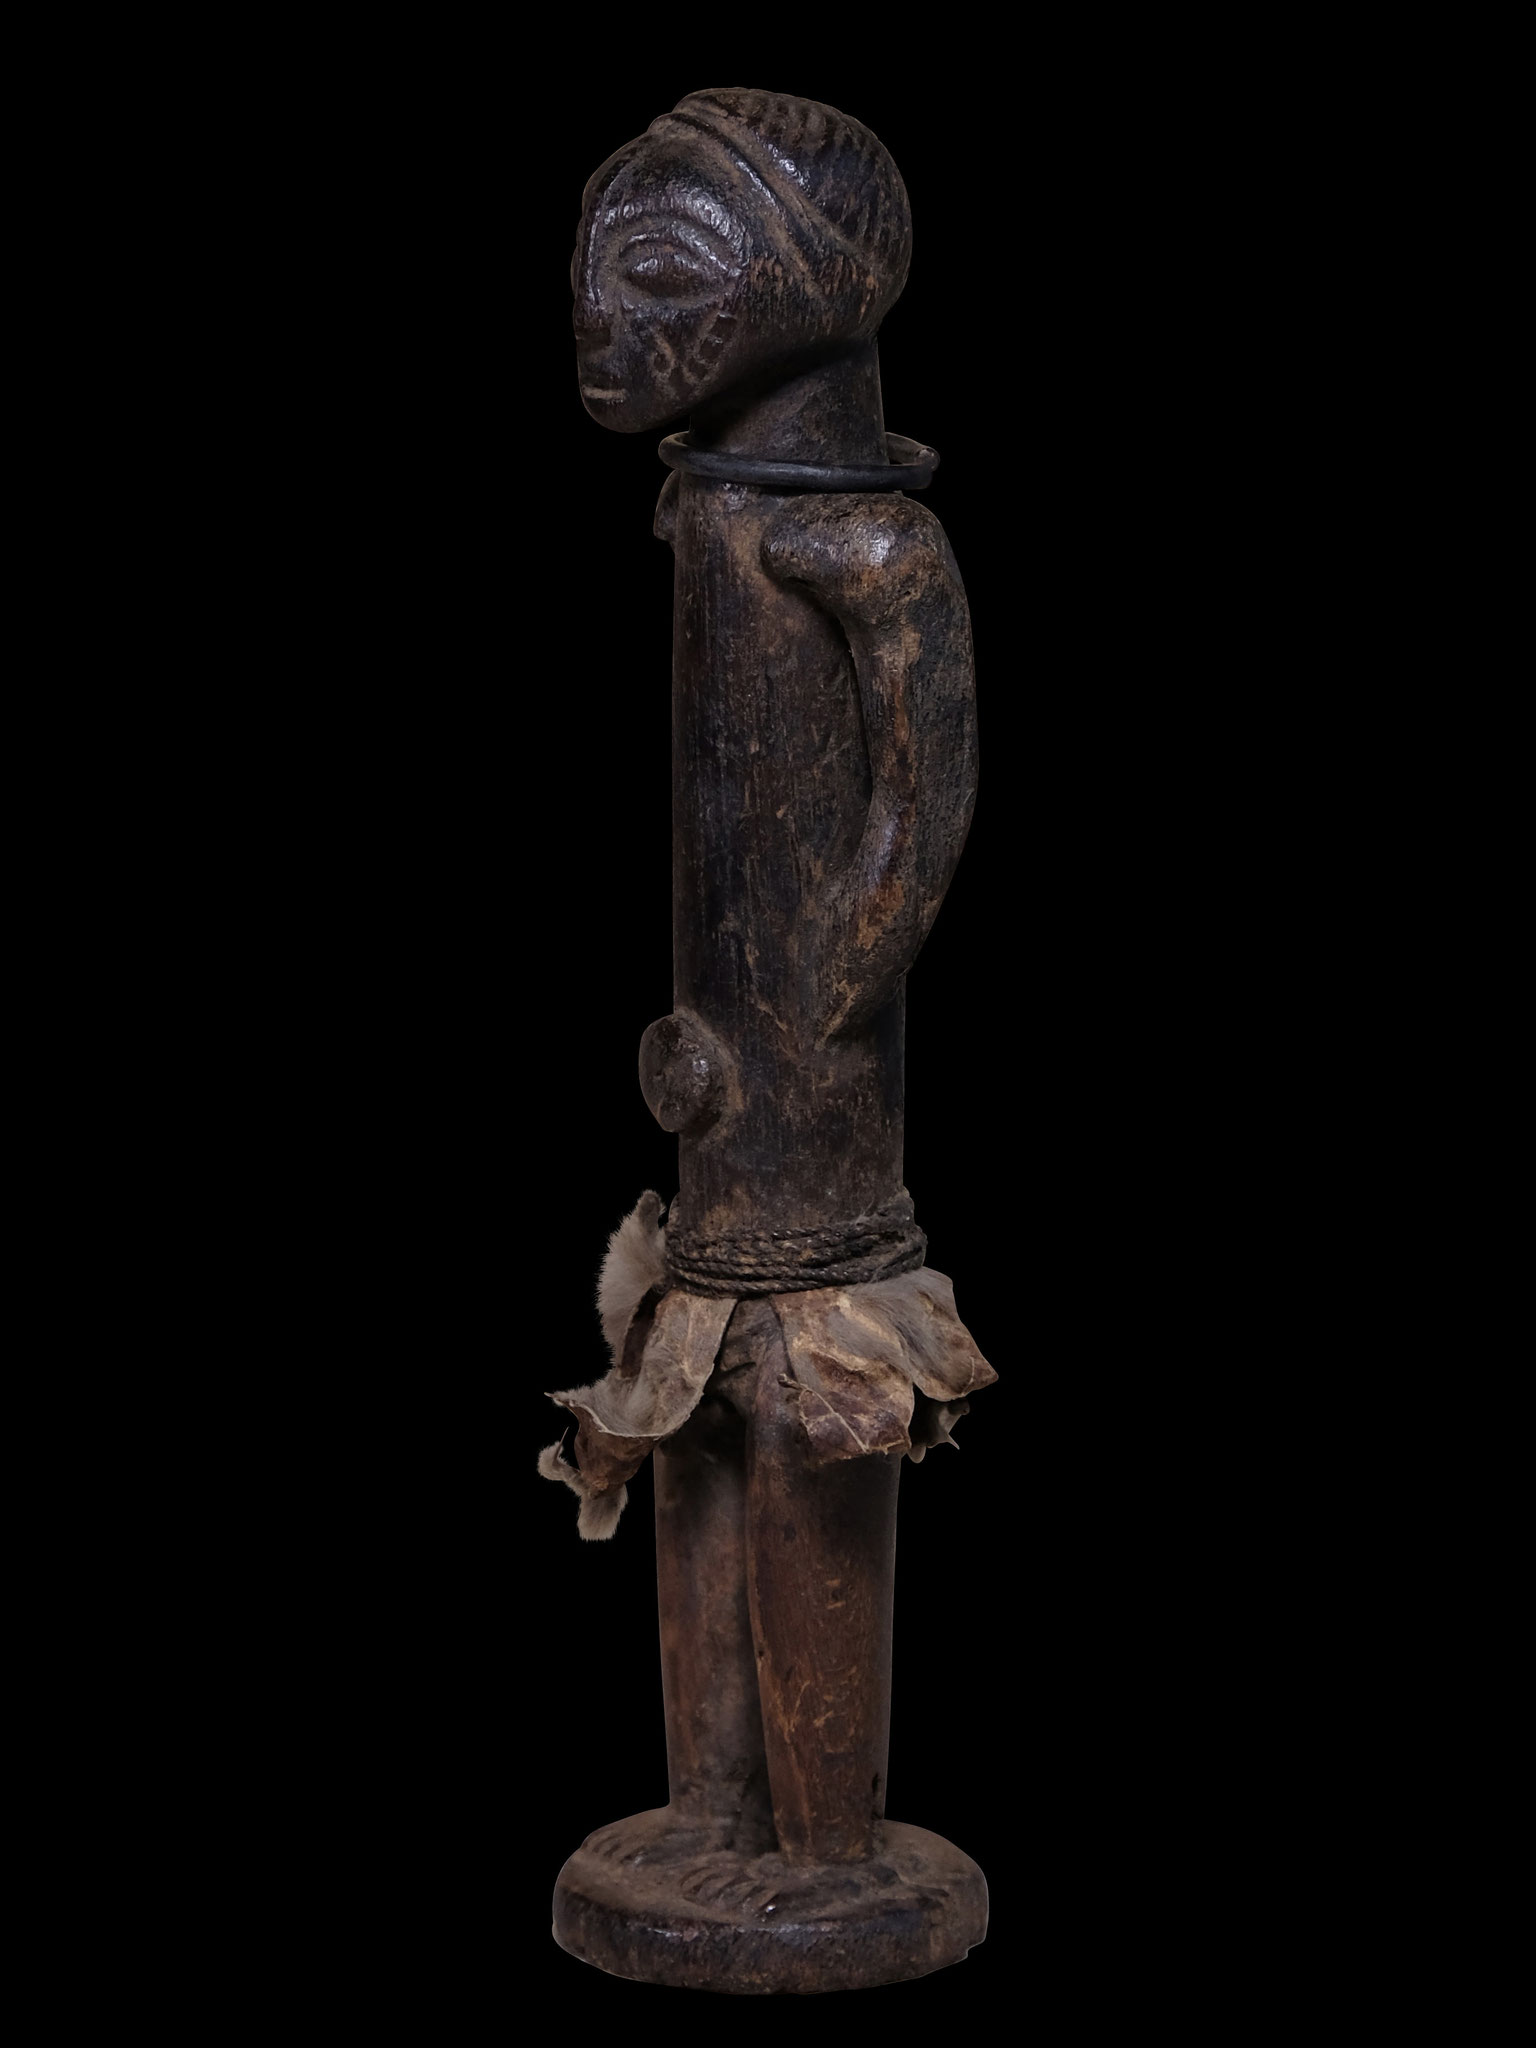 Tabwa Figure, Congo, with old patina and metal ring around neck